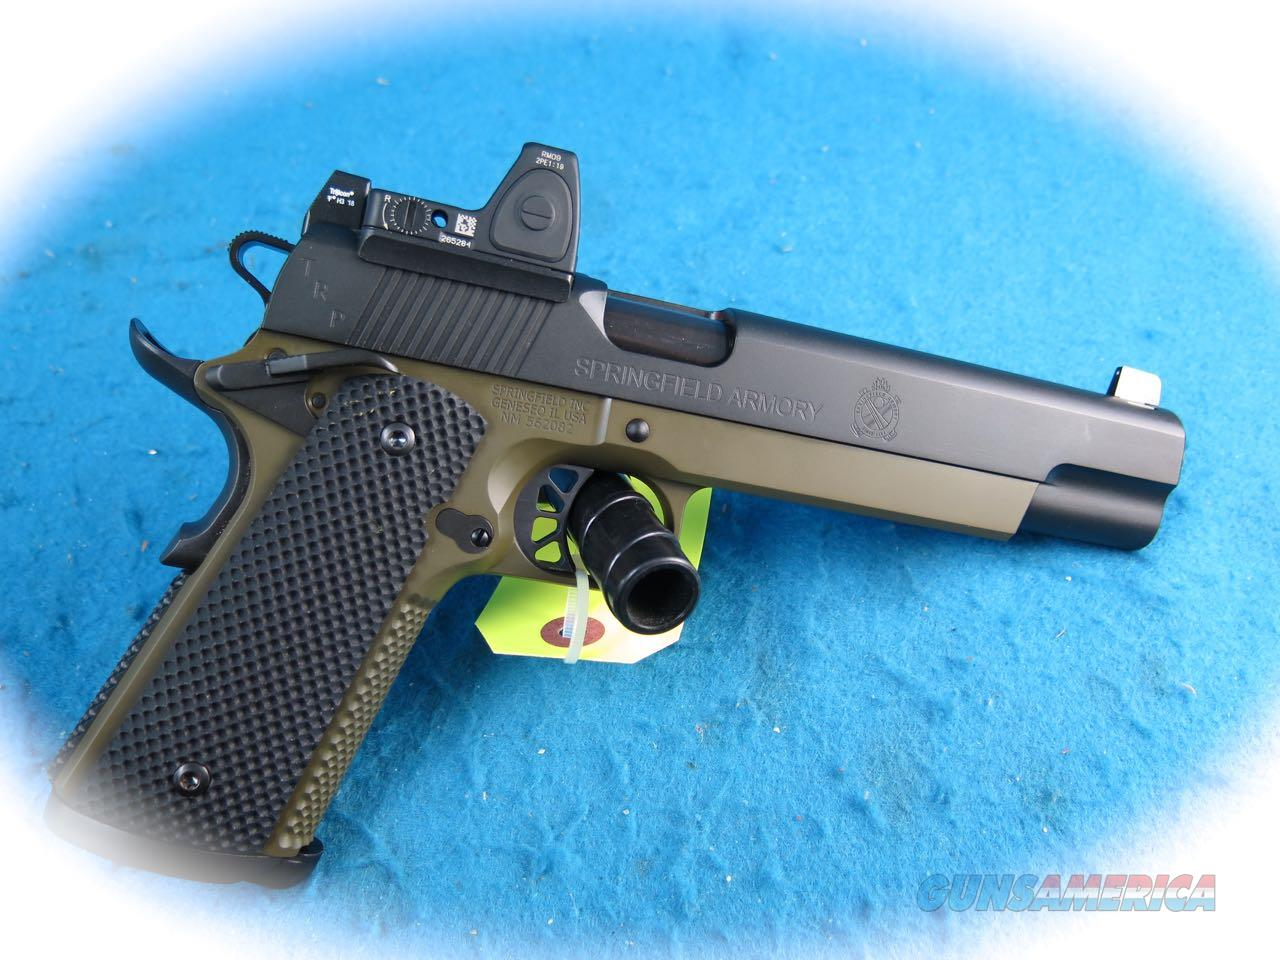 Springfield Armory 1911 TRP 10MM RMR Long Slide 10mm Pistol **New**  Guns > Pistols > Springfield Armory Pistols > 1911 Type